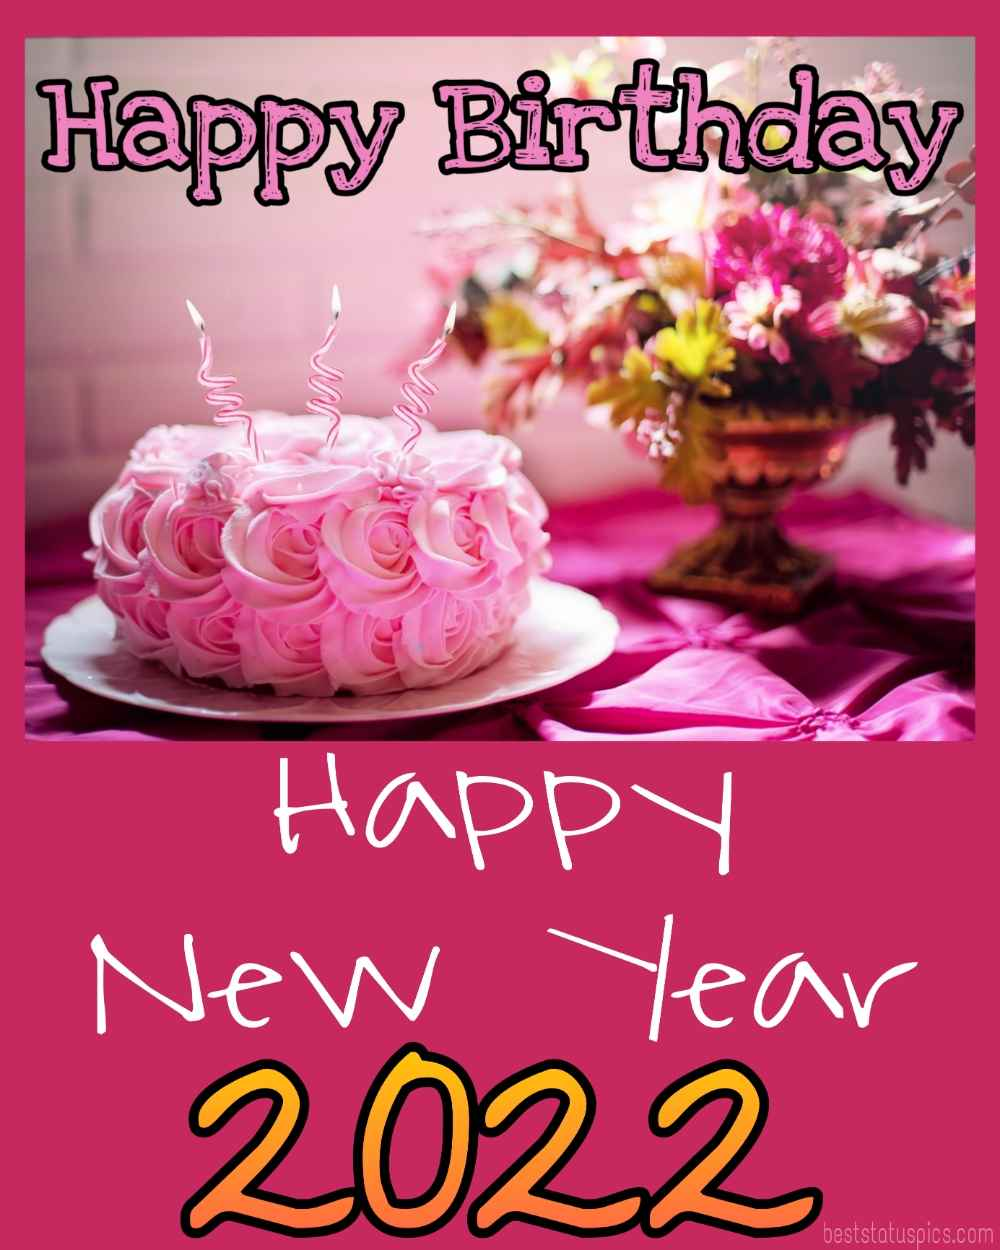 Beautiful Happy new year 2022 and Happy Birthday wishes card with flowers and cake for love